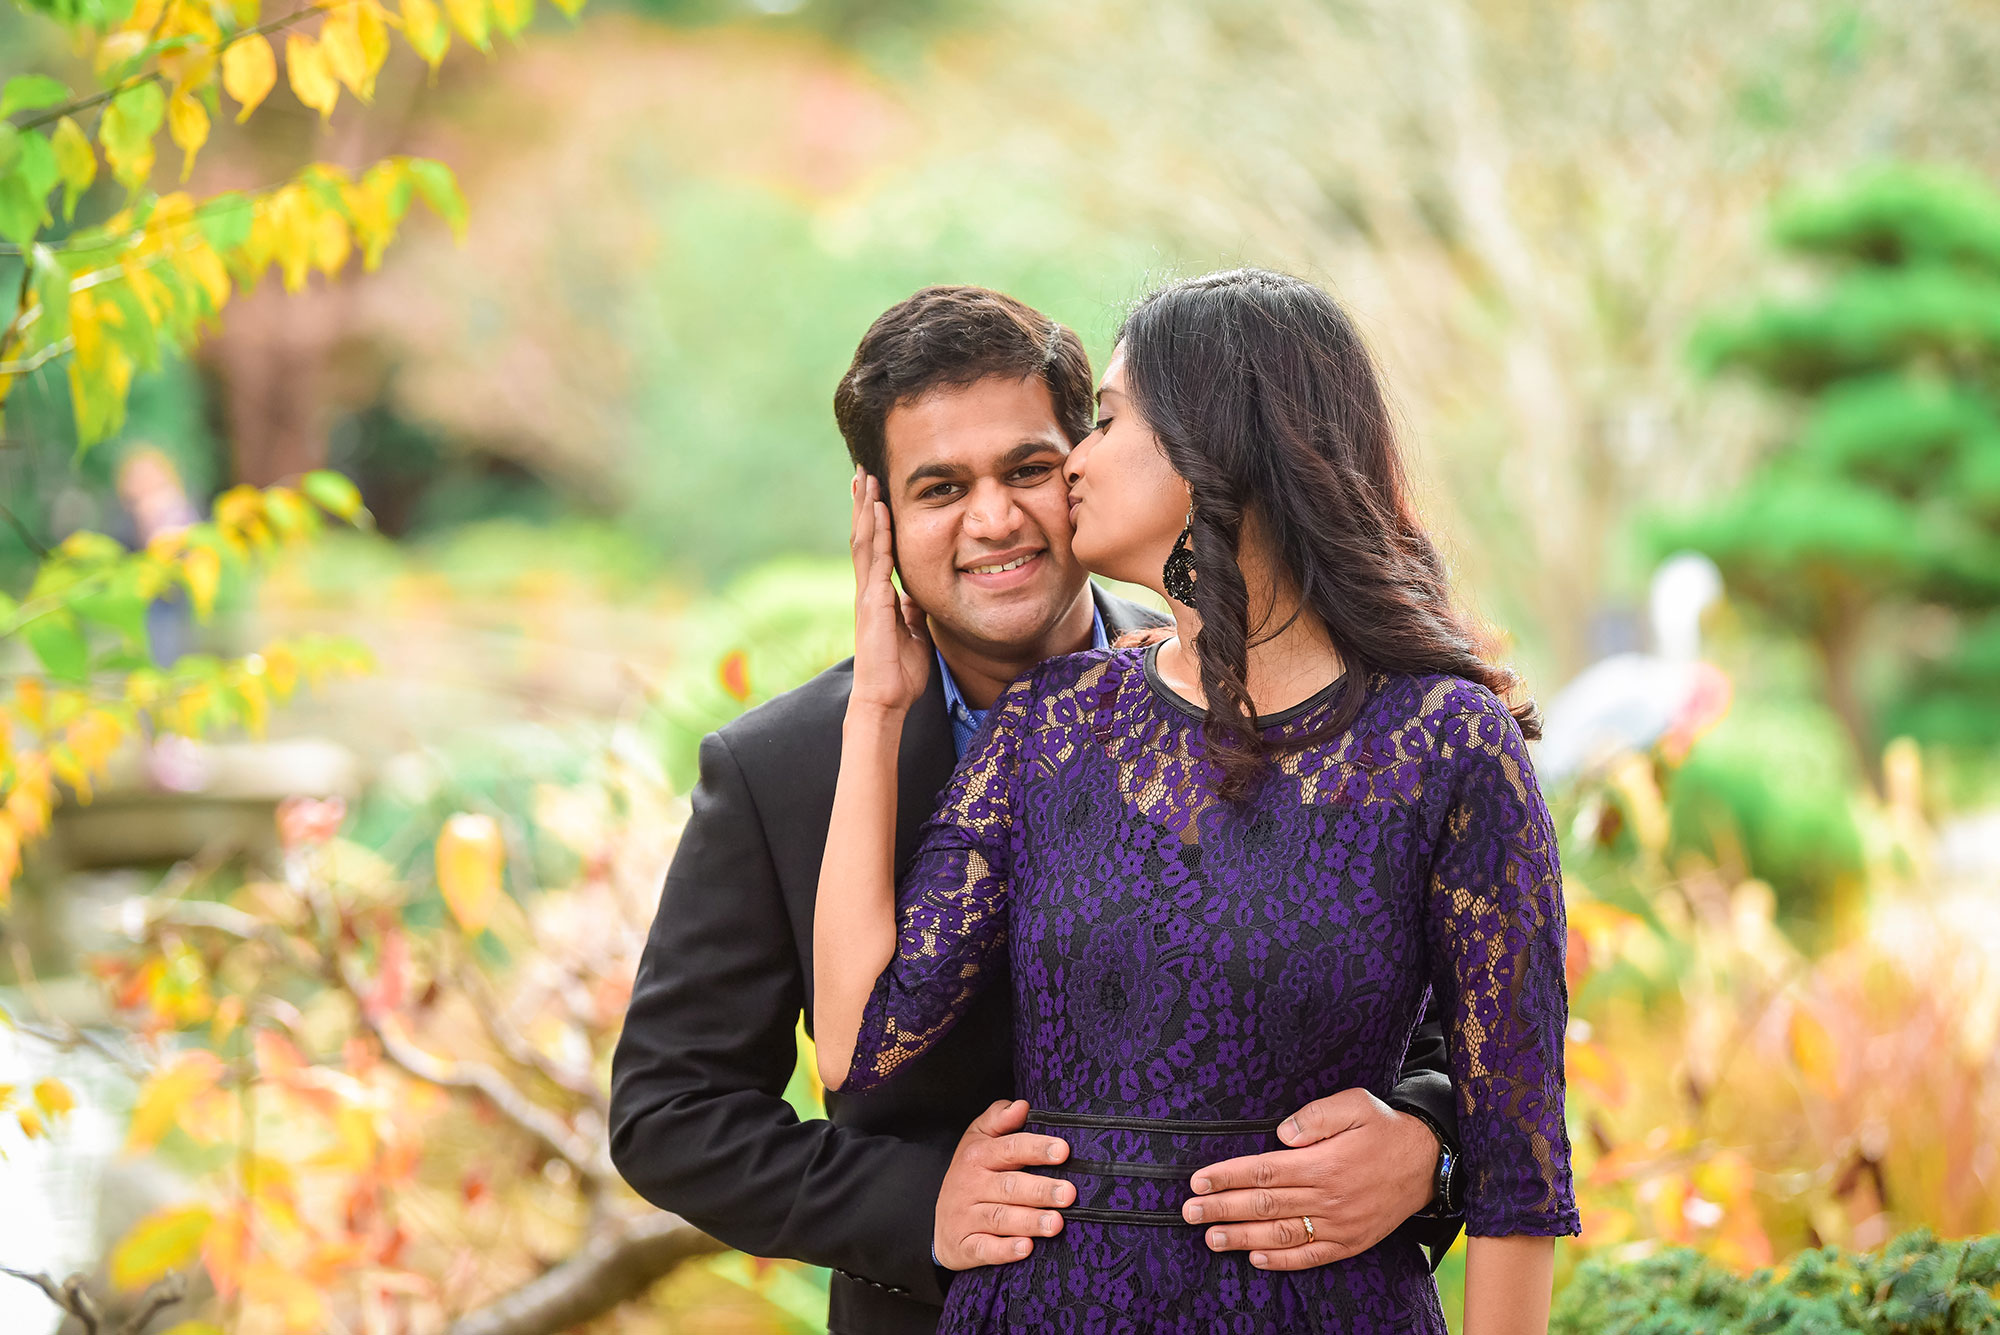 https://bworthyphotography.smugmug.com/BW-Website-Engagement-Session/Narayan-Engagement-Session